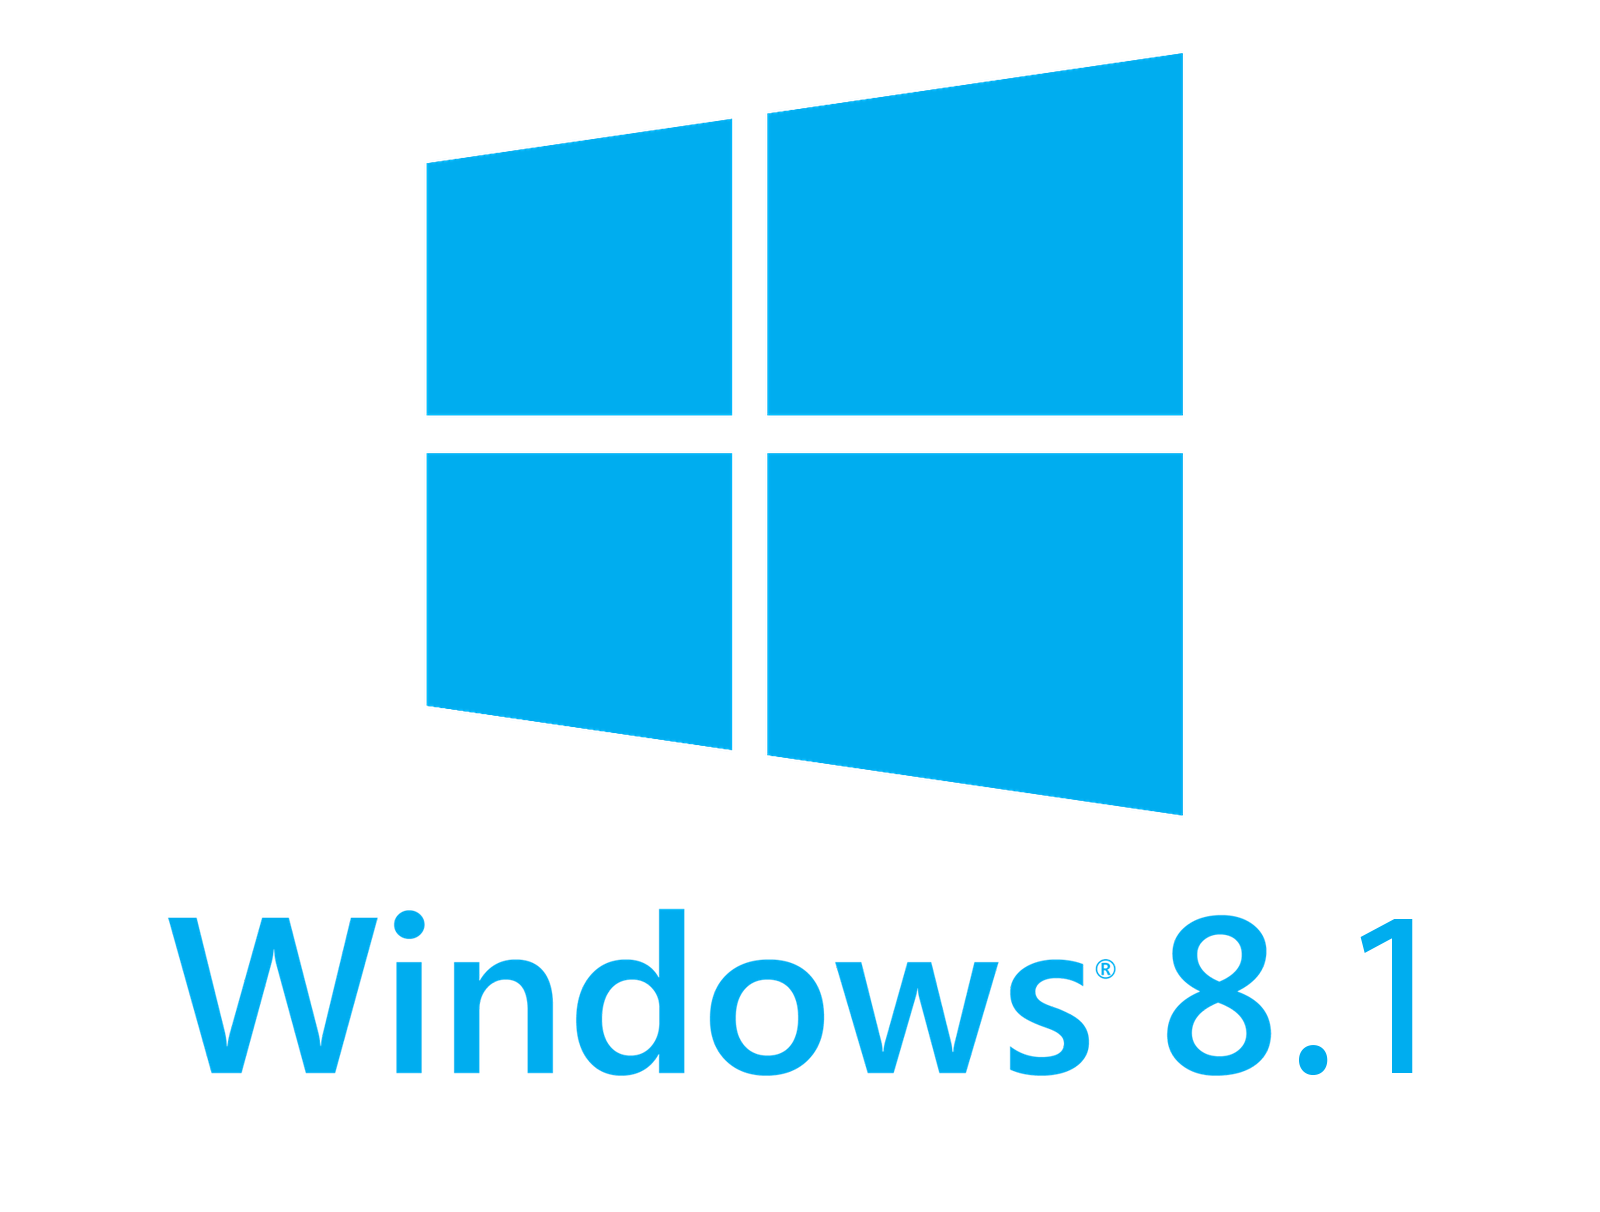 windows 81 logo images wwwimgkidcom the image kid